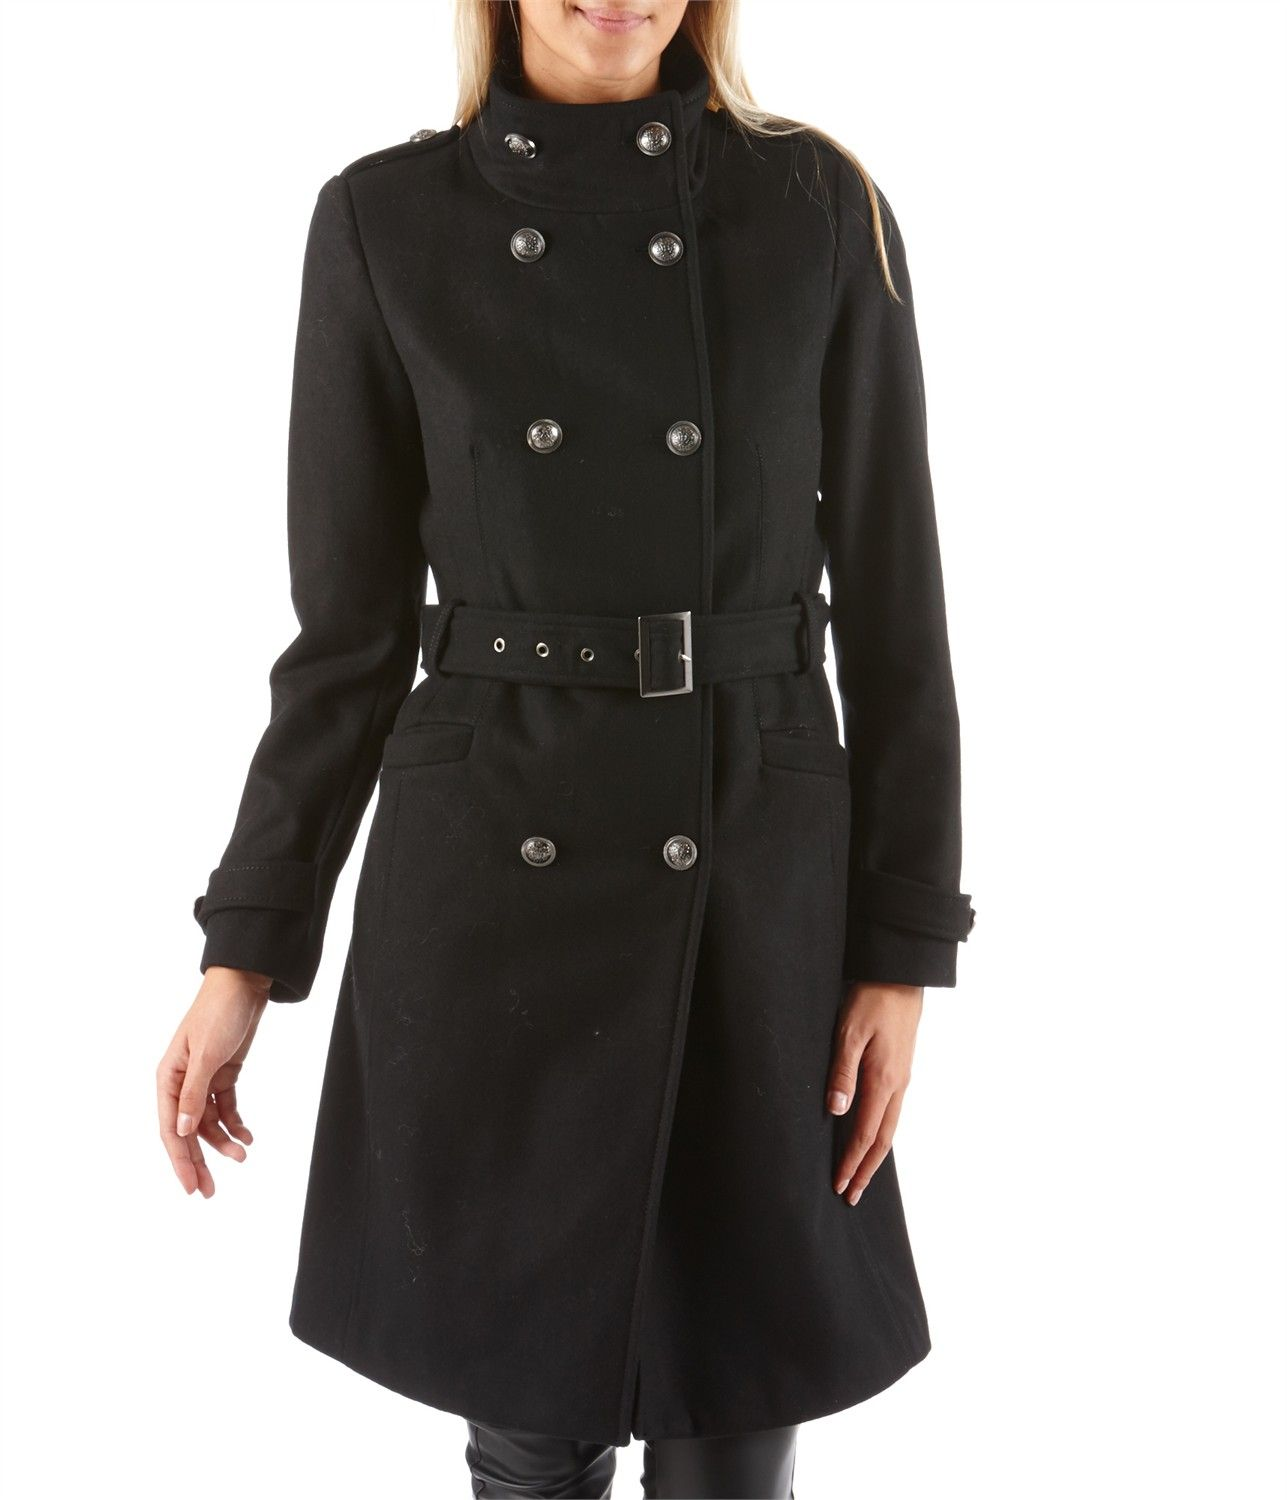 manteau officier femme double boutonnage vetements femme pas cher pinterest manteau. Black Bedroom Furniture Sets. Home Design Ideas